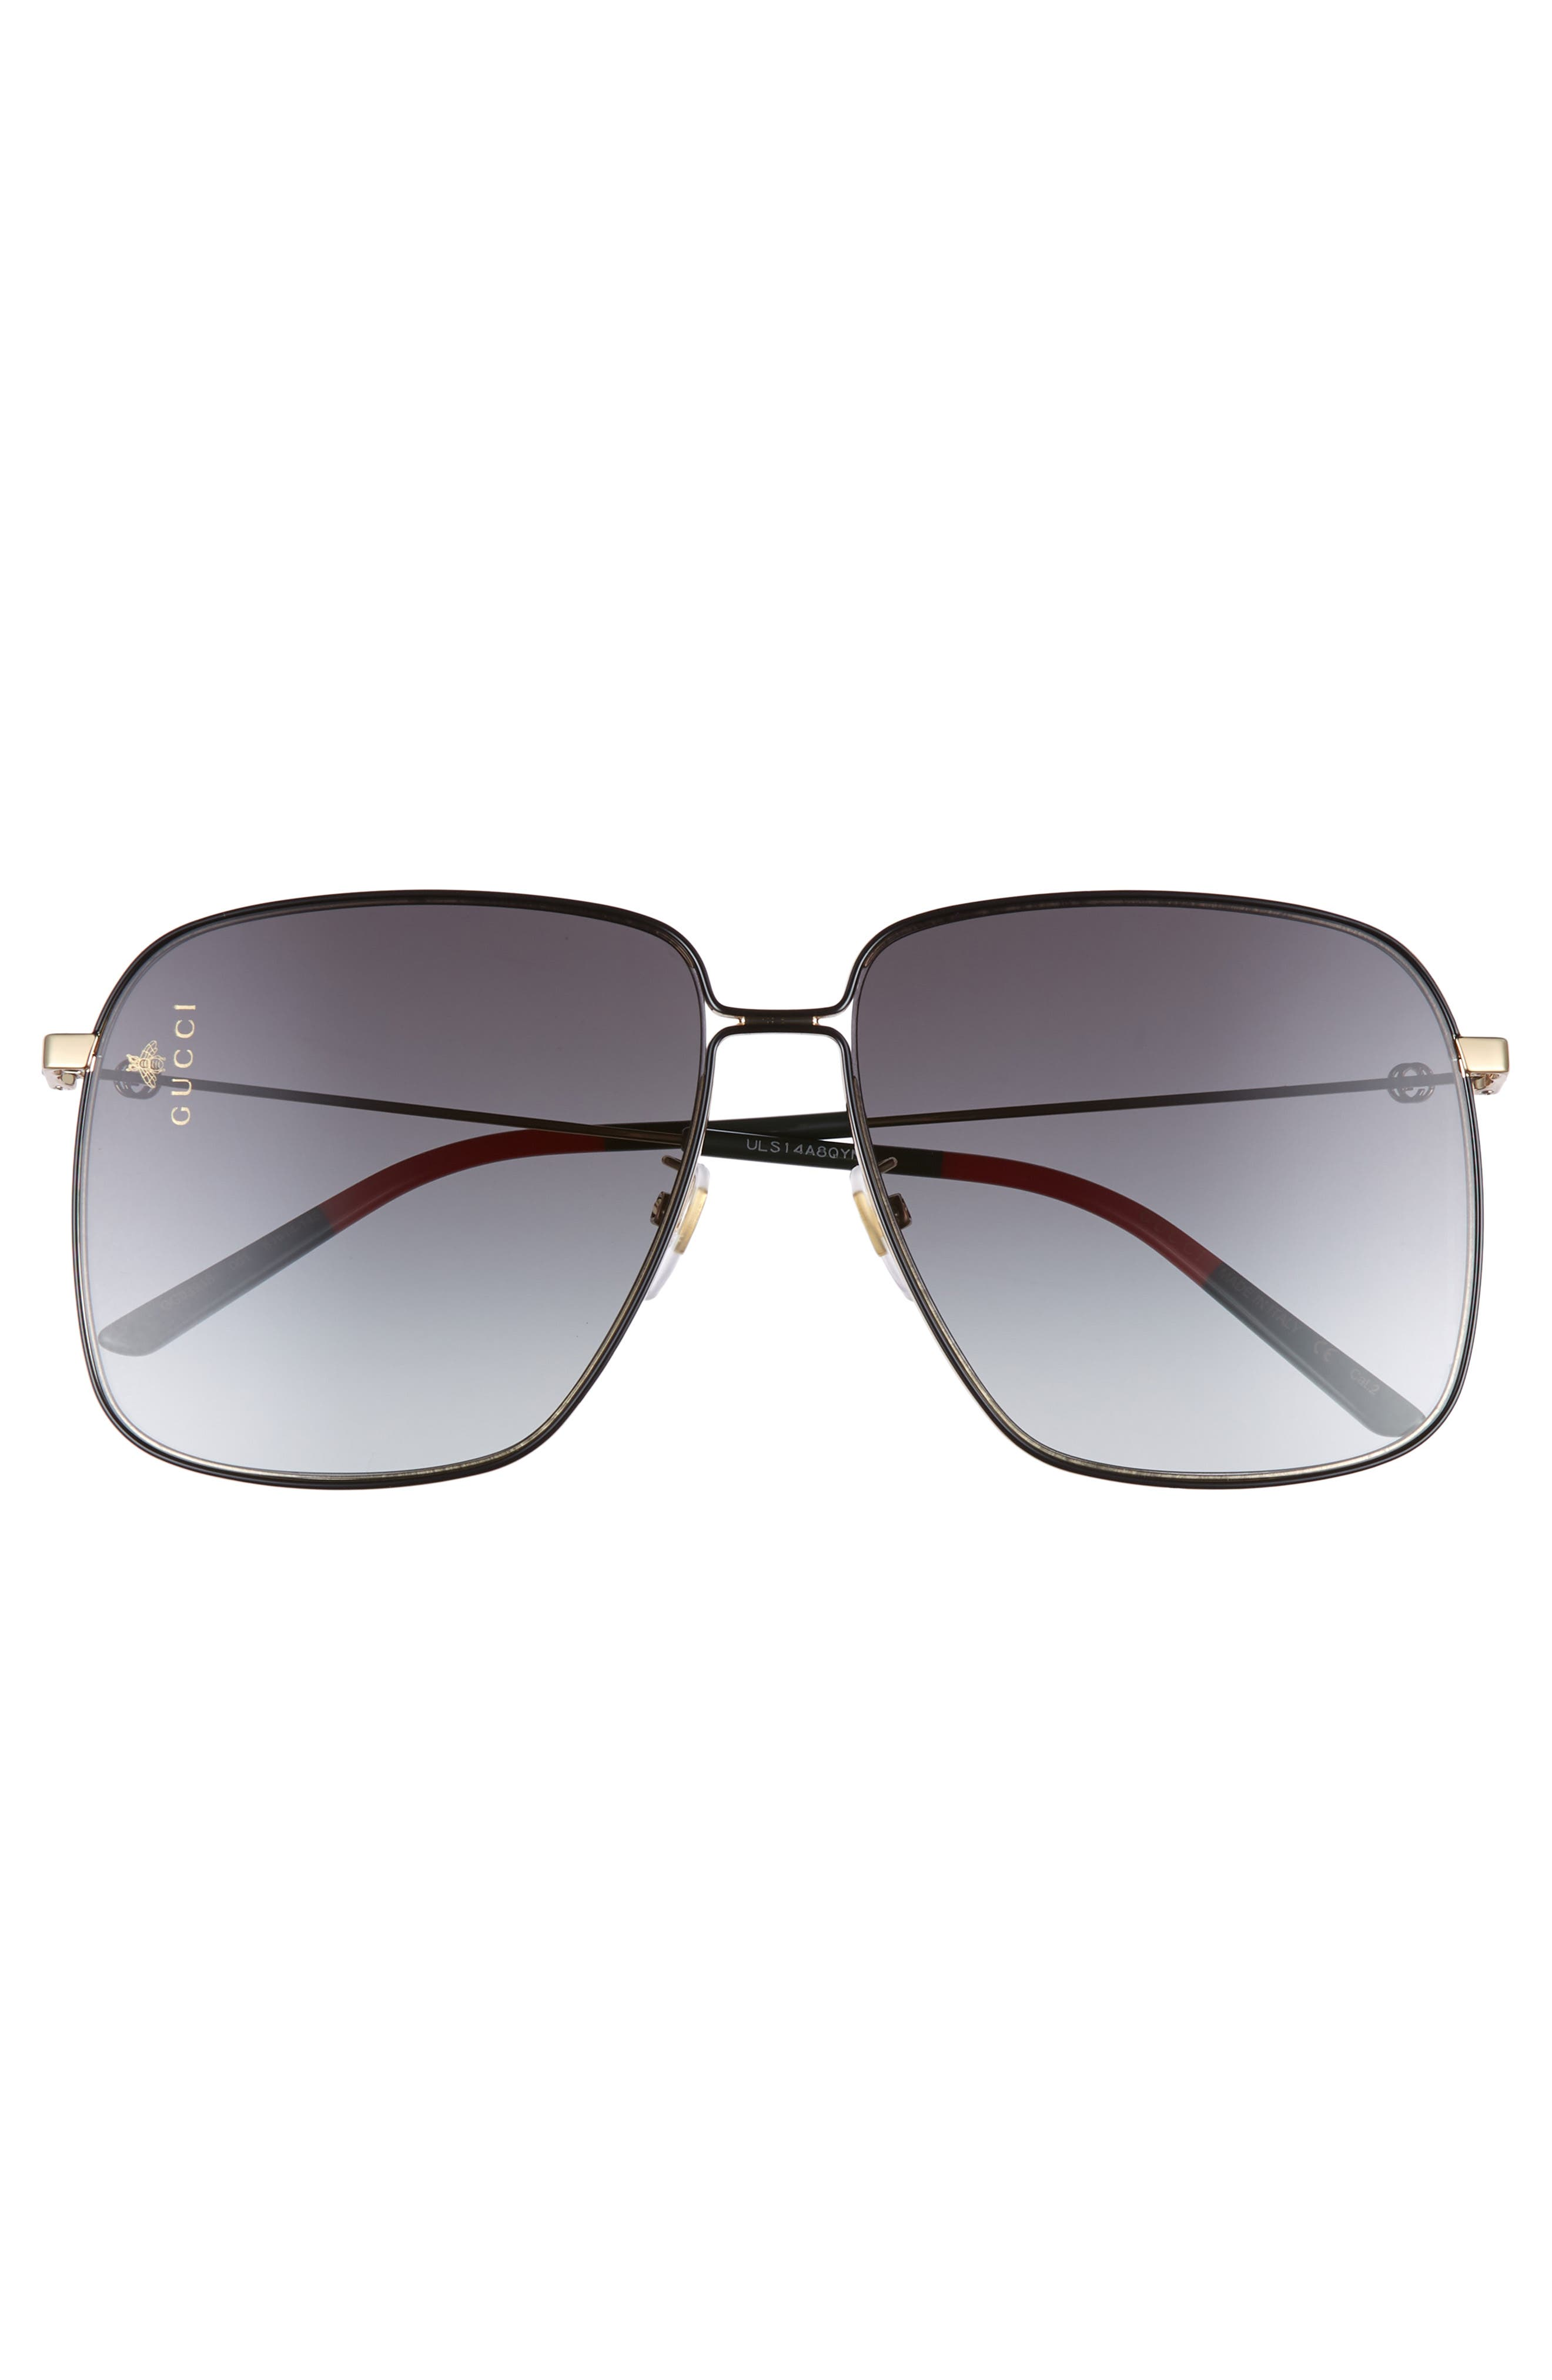 GUCCI,                             61mm Square Sunglasses,                             Alternate thumbnail 3, color,                             GOLD/GREEN/RED/GREY GRADIENT